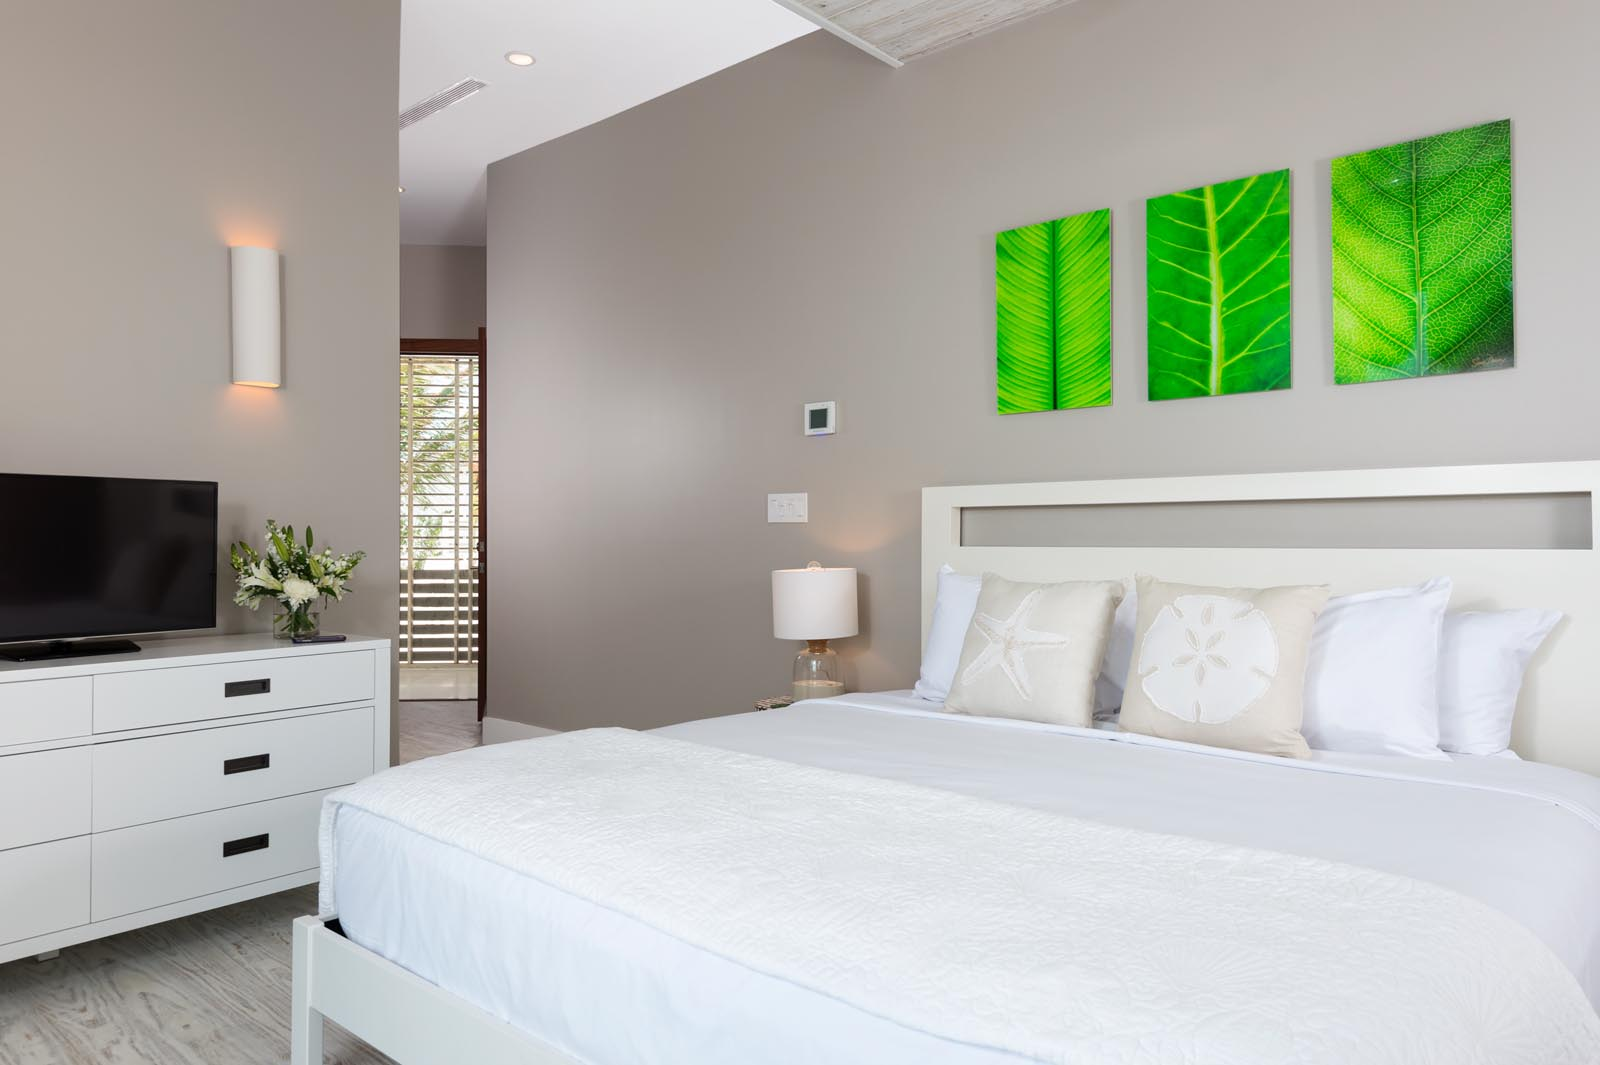 All bedrooms at Aguaribay, Long Bay Beach, Providenciales (Provo), Turks and Caicos Islands feature a 32″ TV.